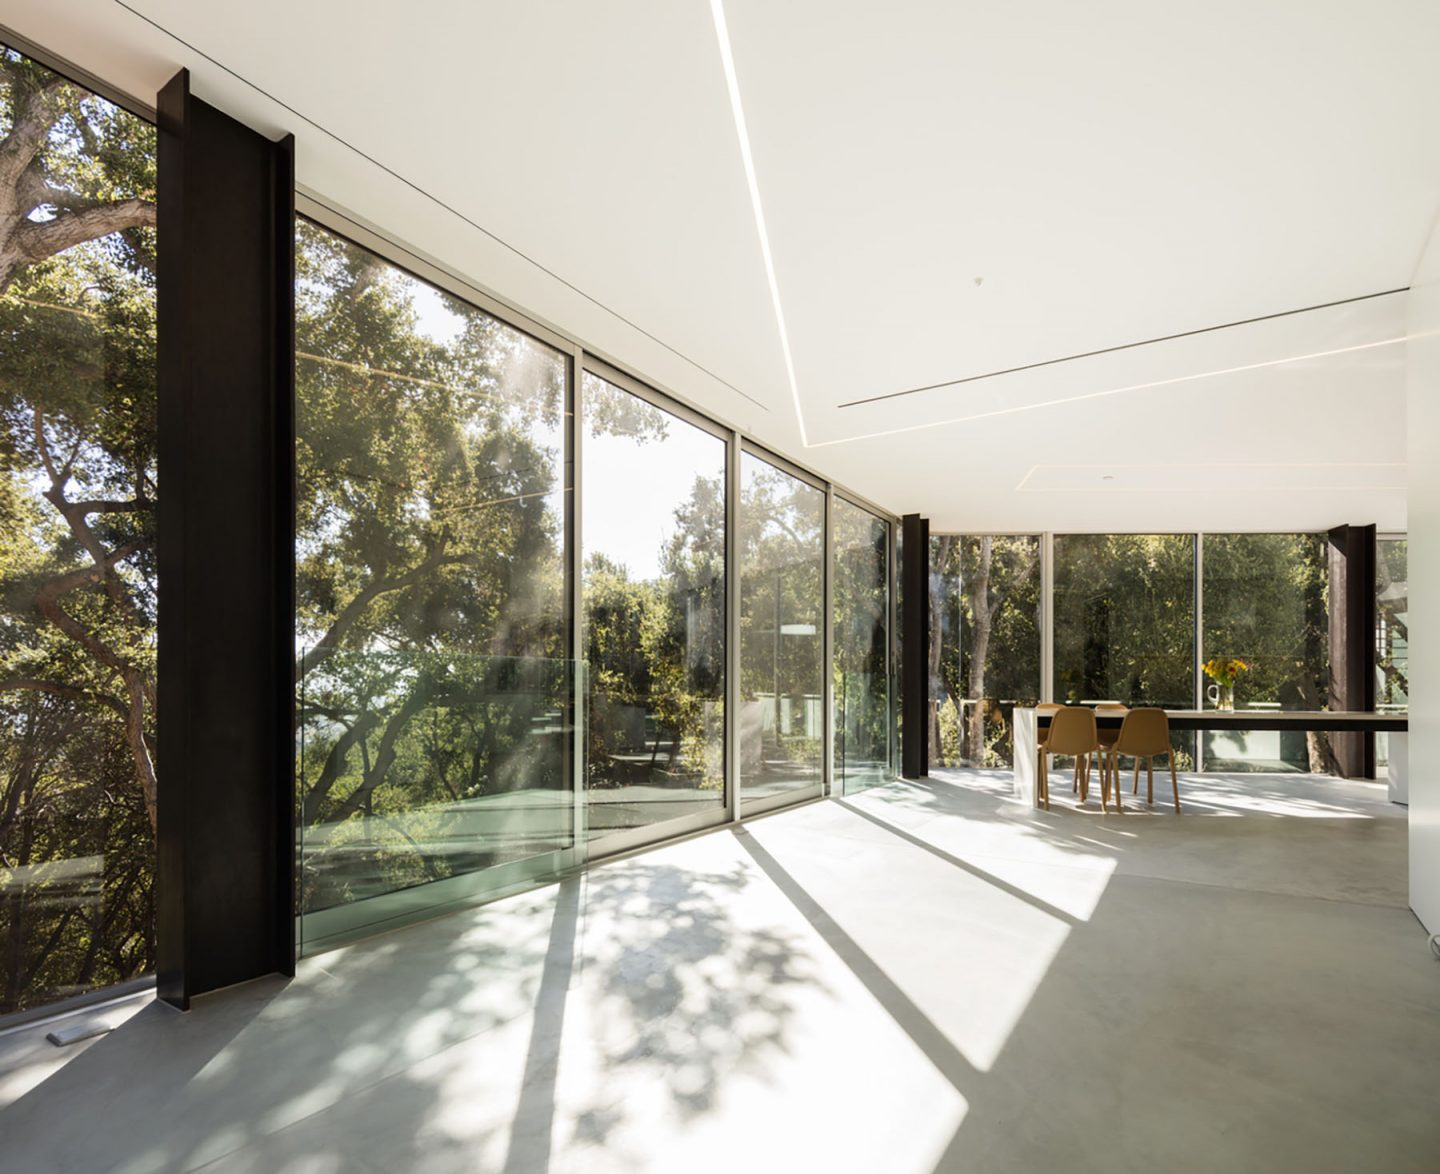 iGNANT-Architecture-Craig-Steely-Pam-Pauls-House-009b